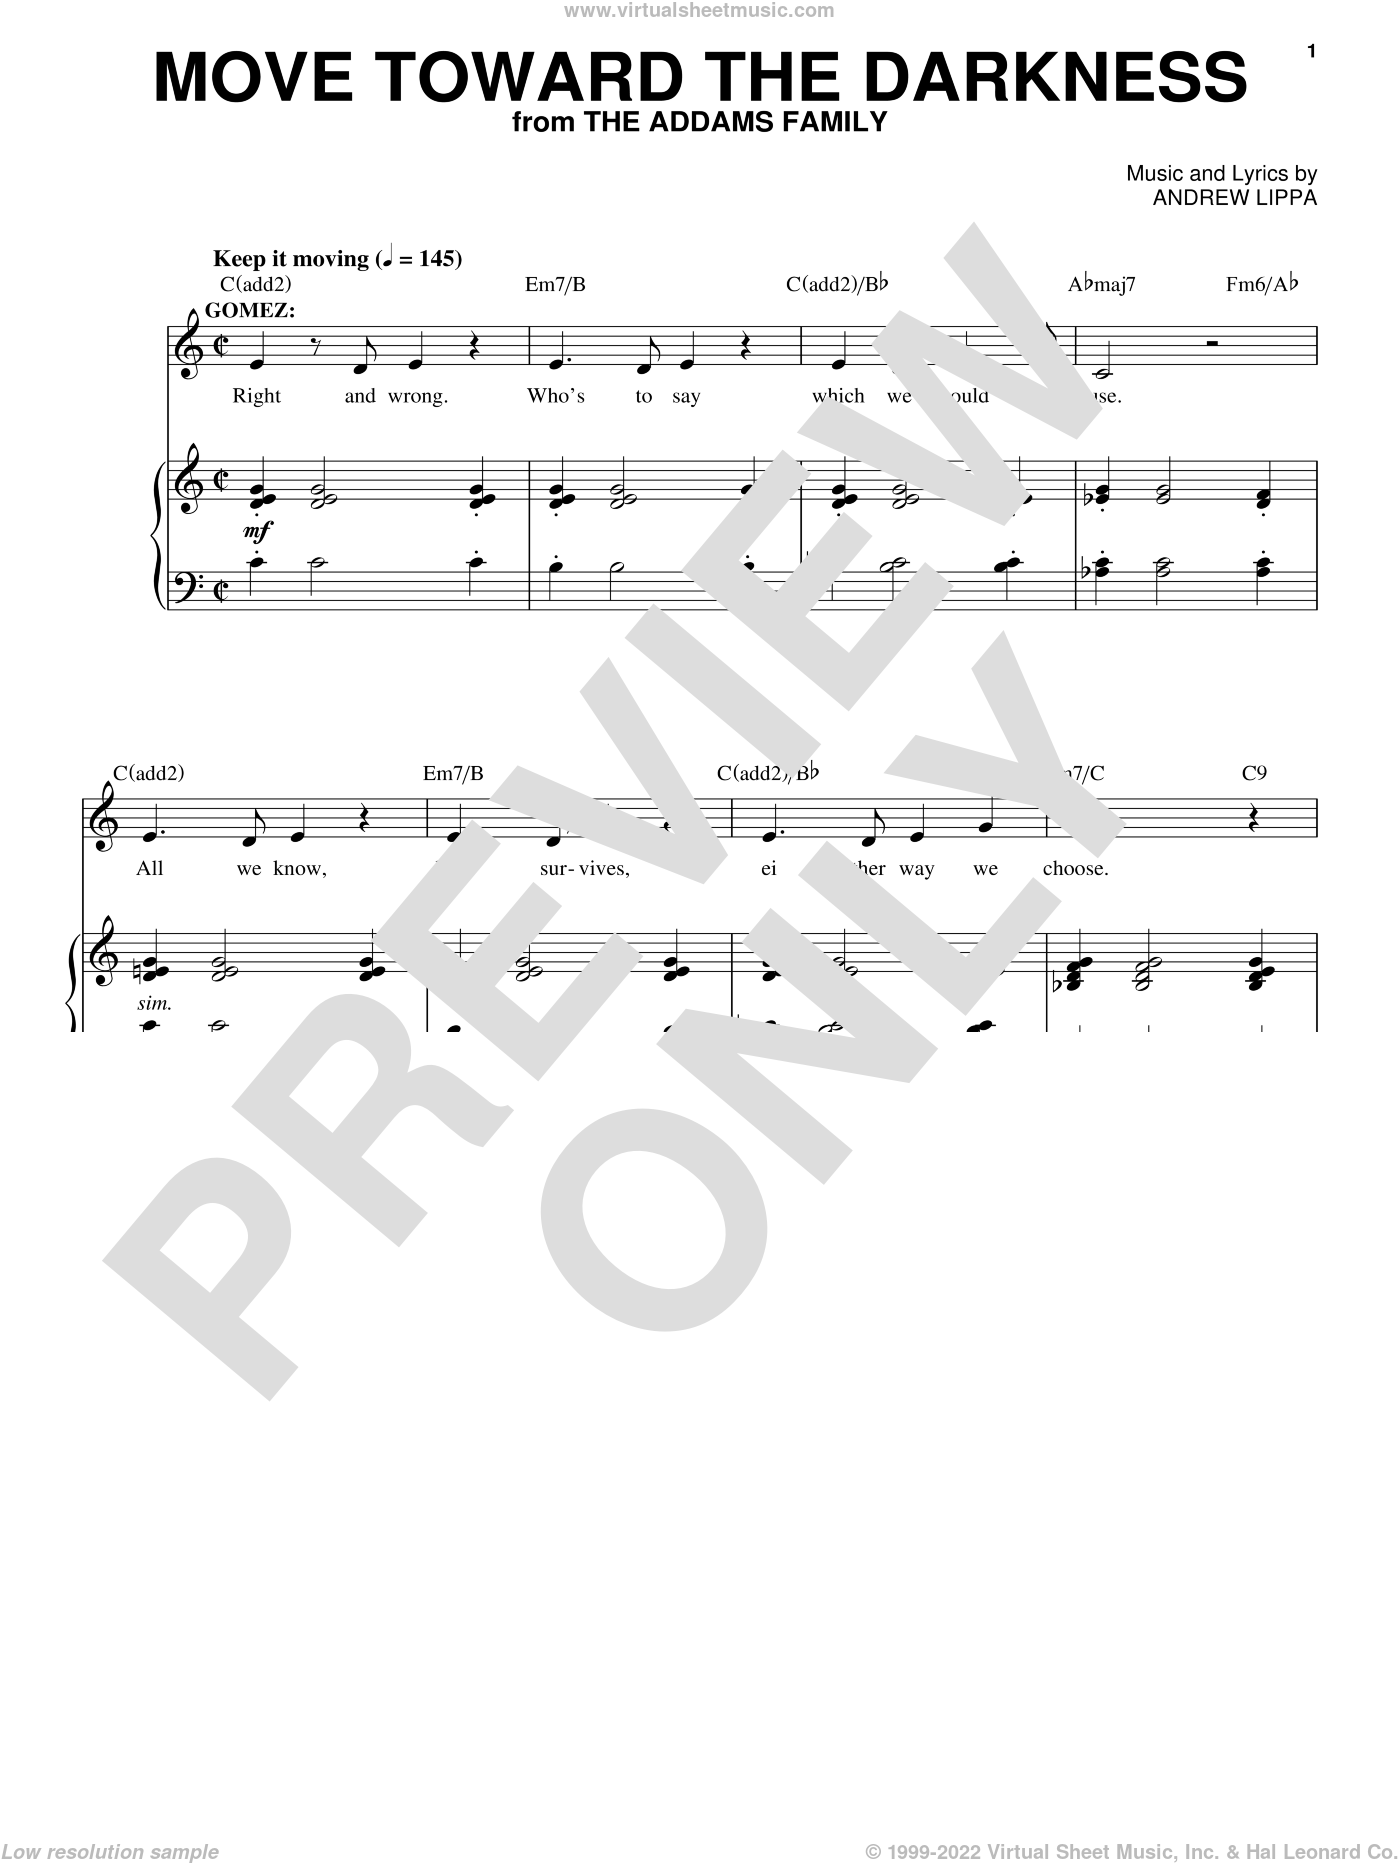 Move Toward The Darkness sheet music for voice, piano or guitar by Andrew Lippa. Score Image Preview.